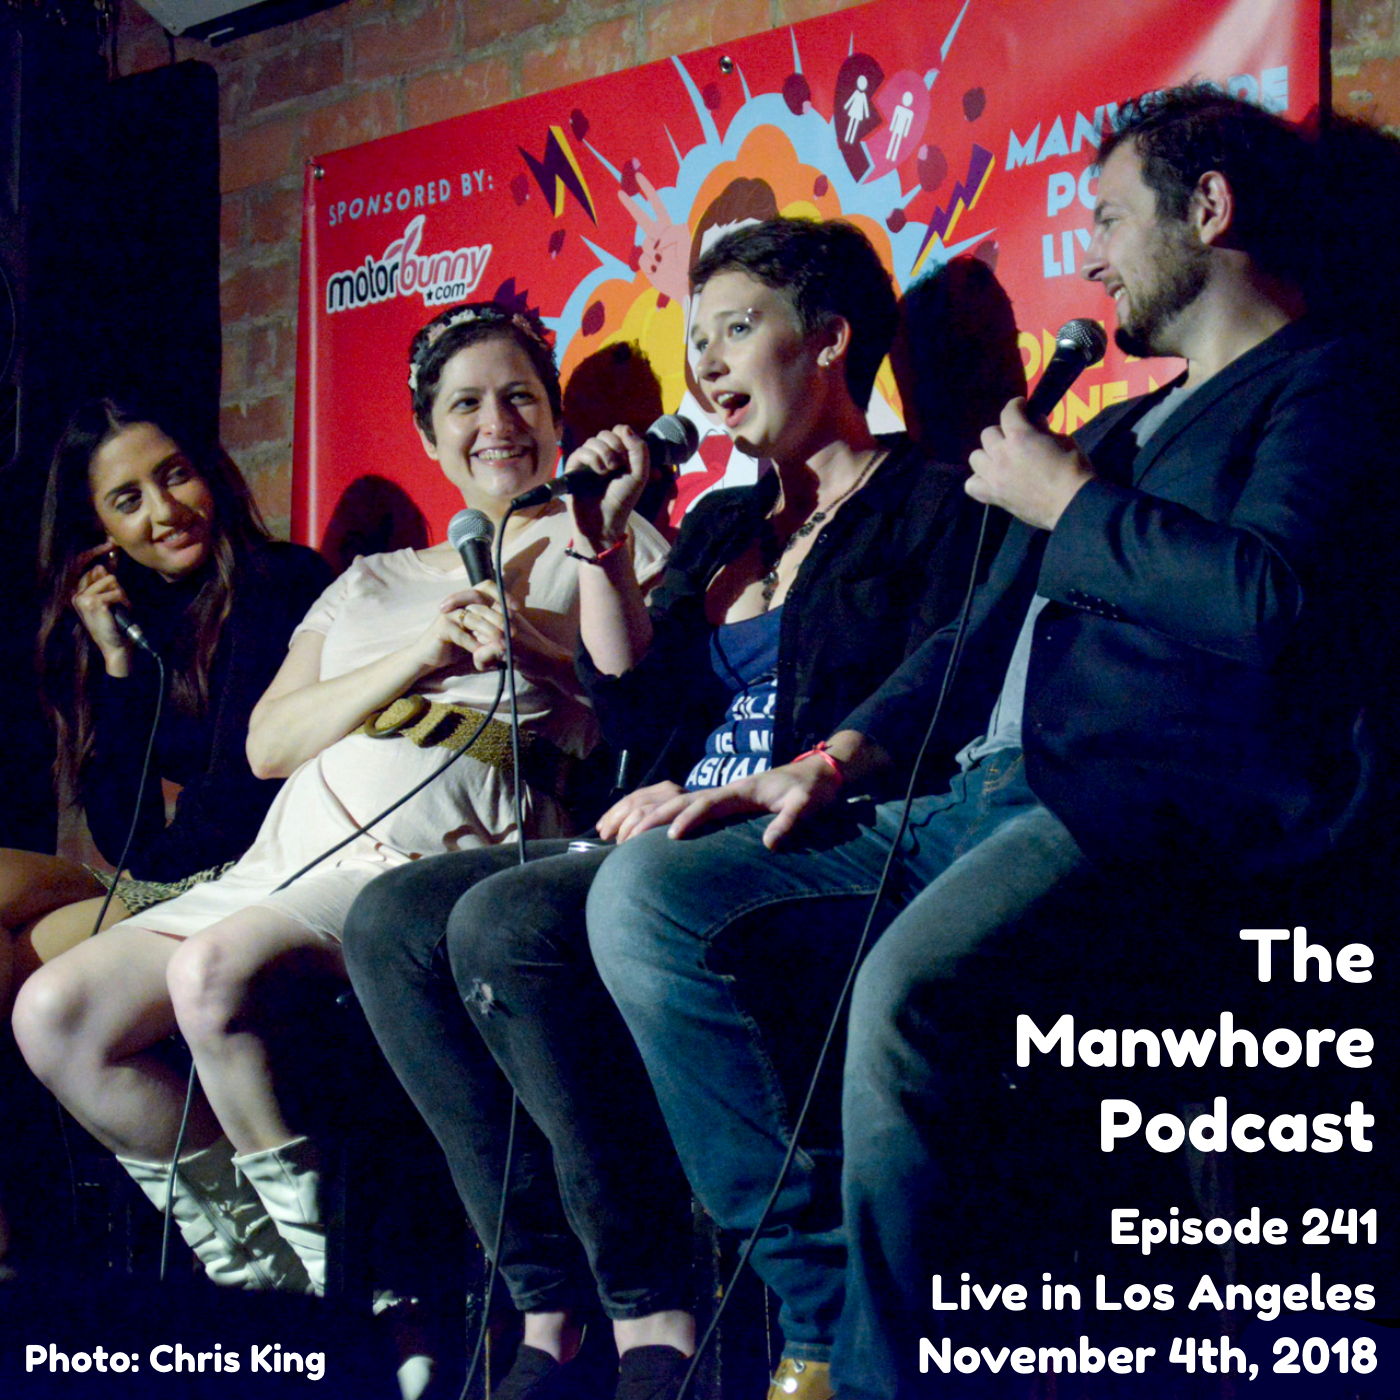 """The Manwhore Podcast: A Sex-Positive Quest - LIVE from Los Angeles: """"Didn't I blow you in a cab?"""" (Ep. 241)"""